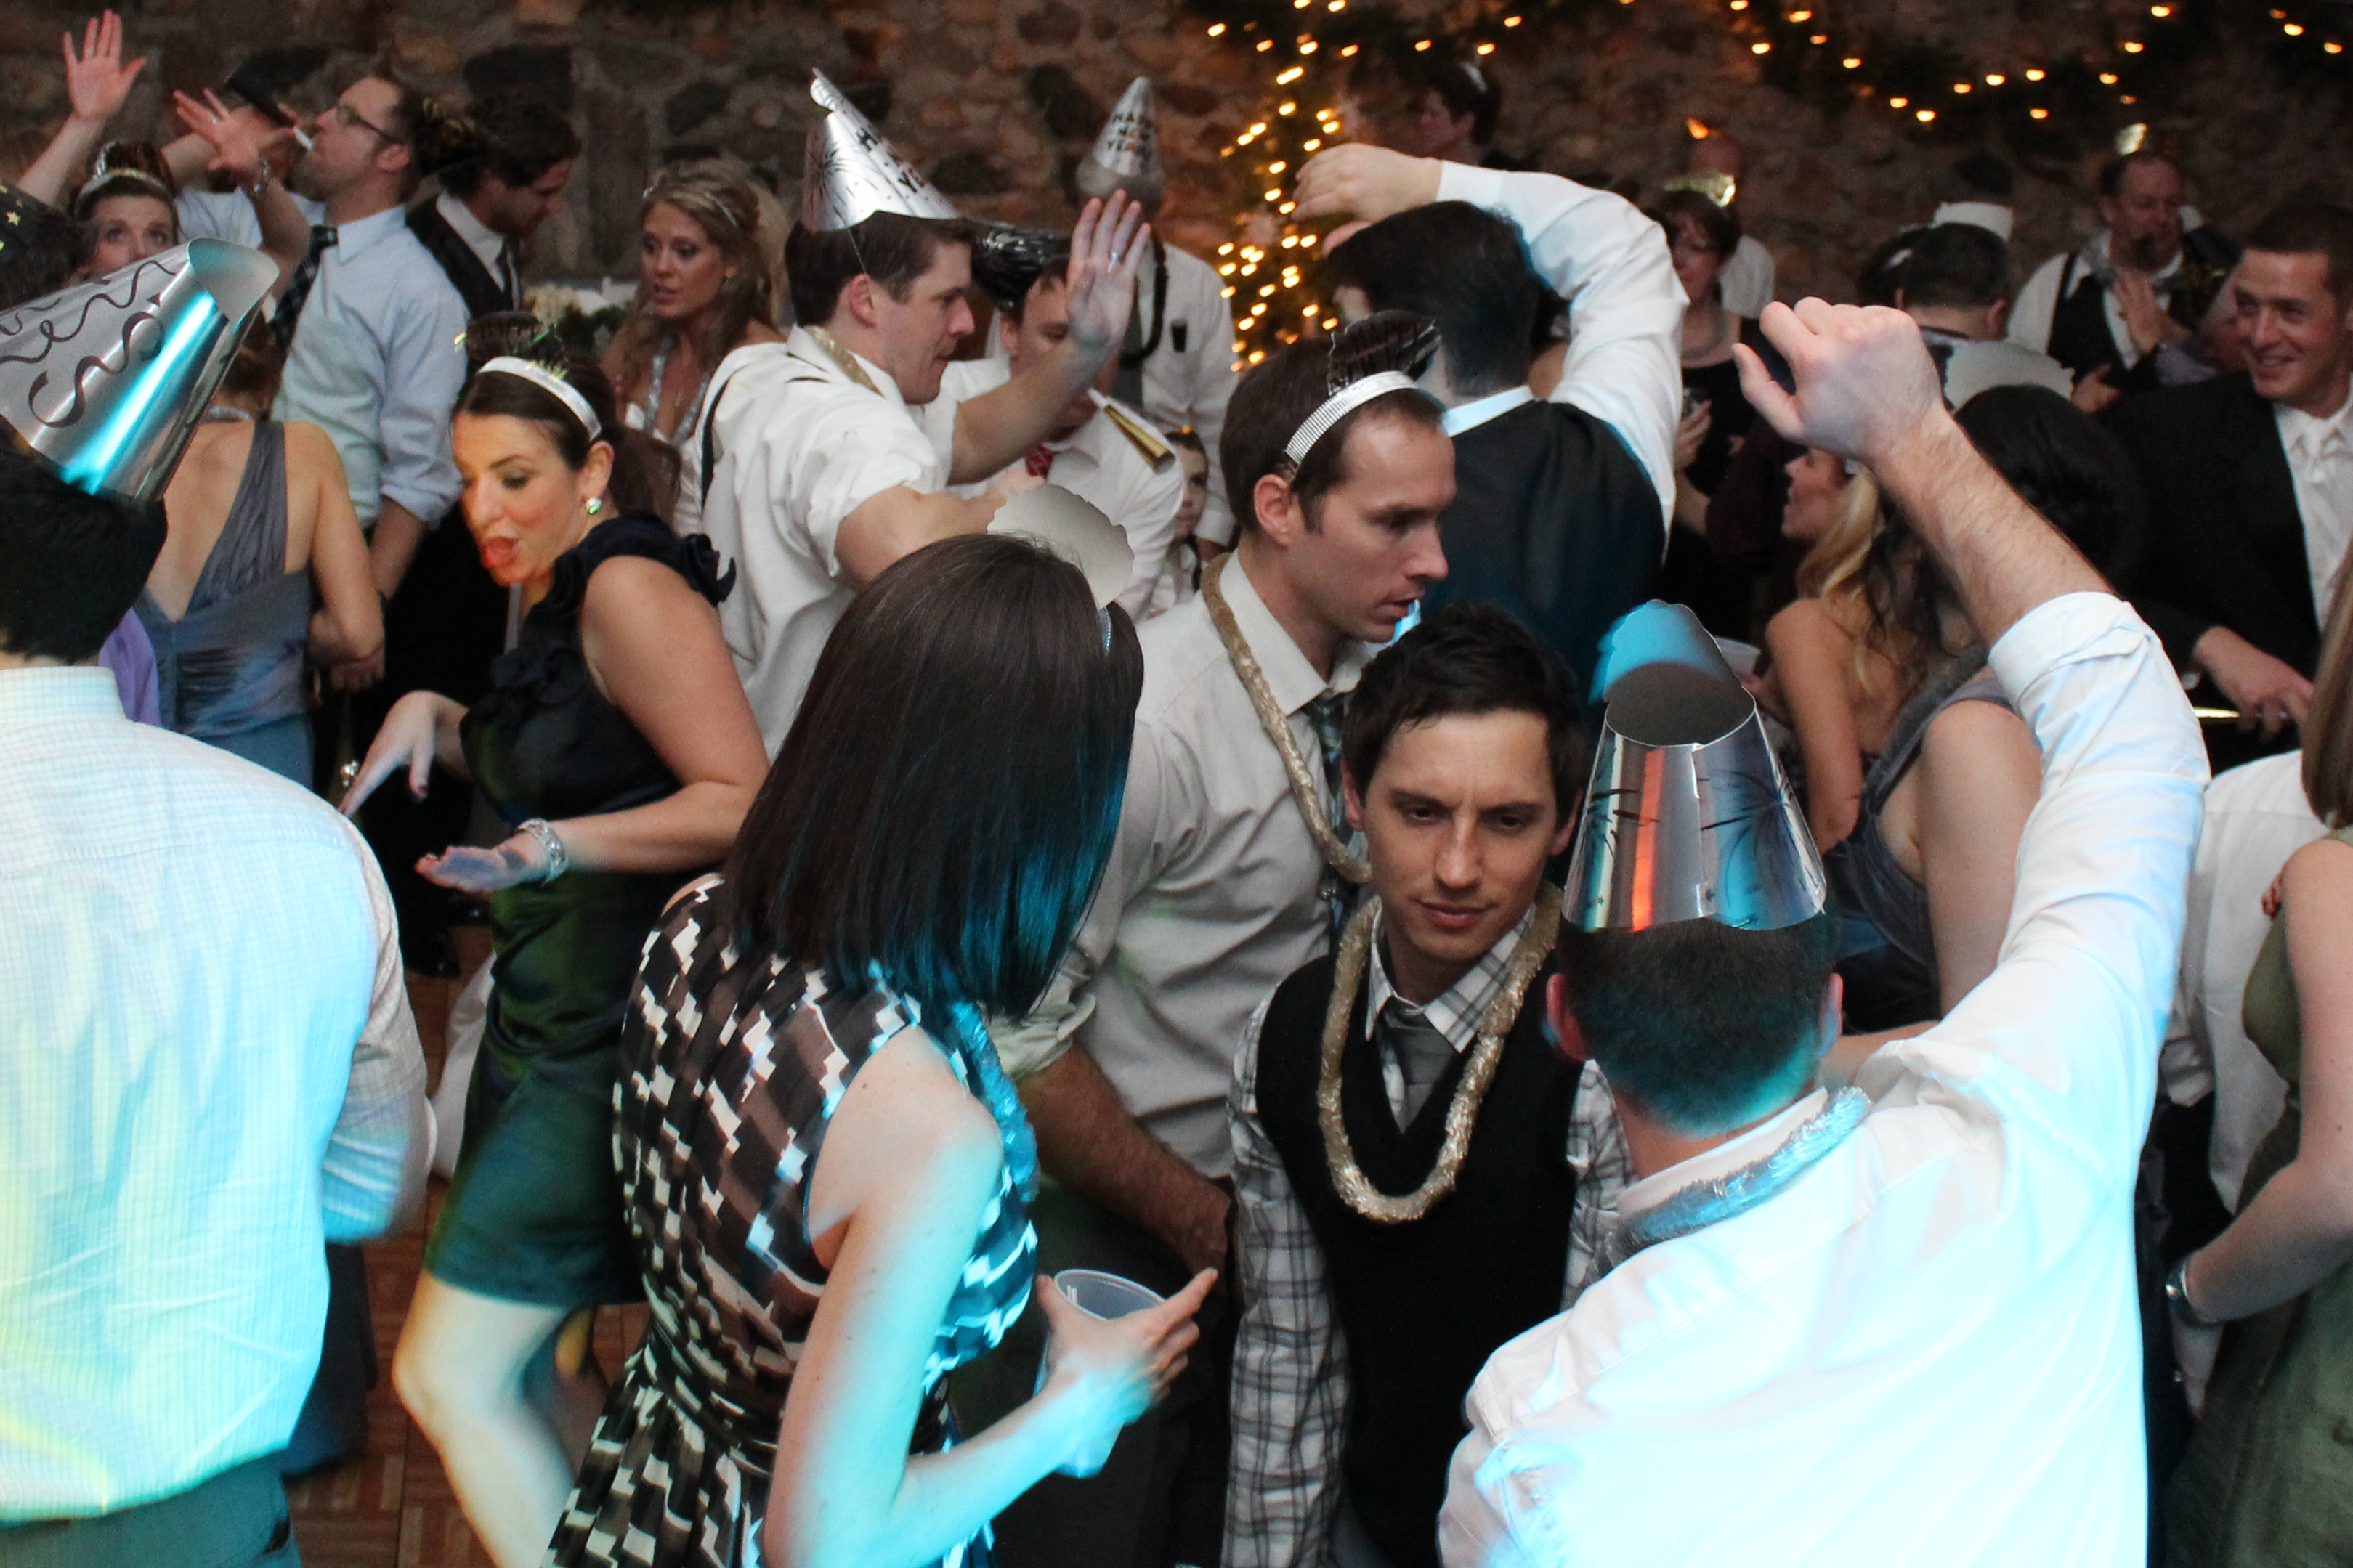 Guests dance at Michigan Party DJ- New years Party DJ